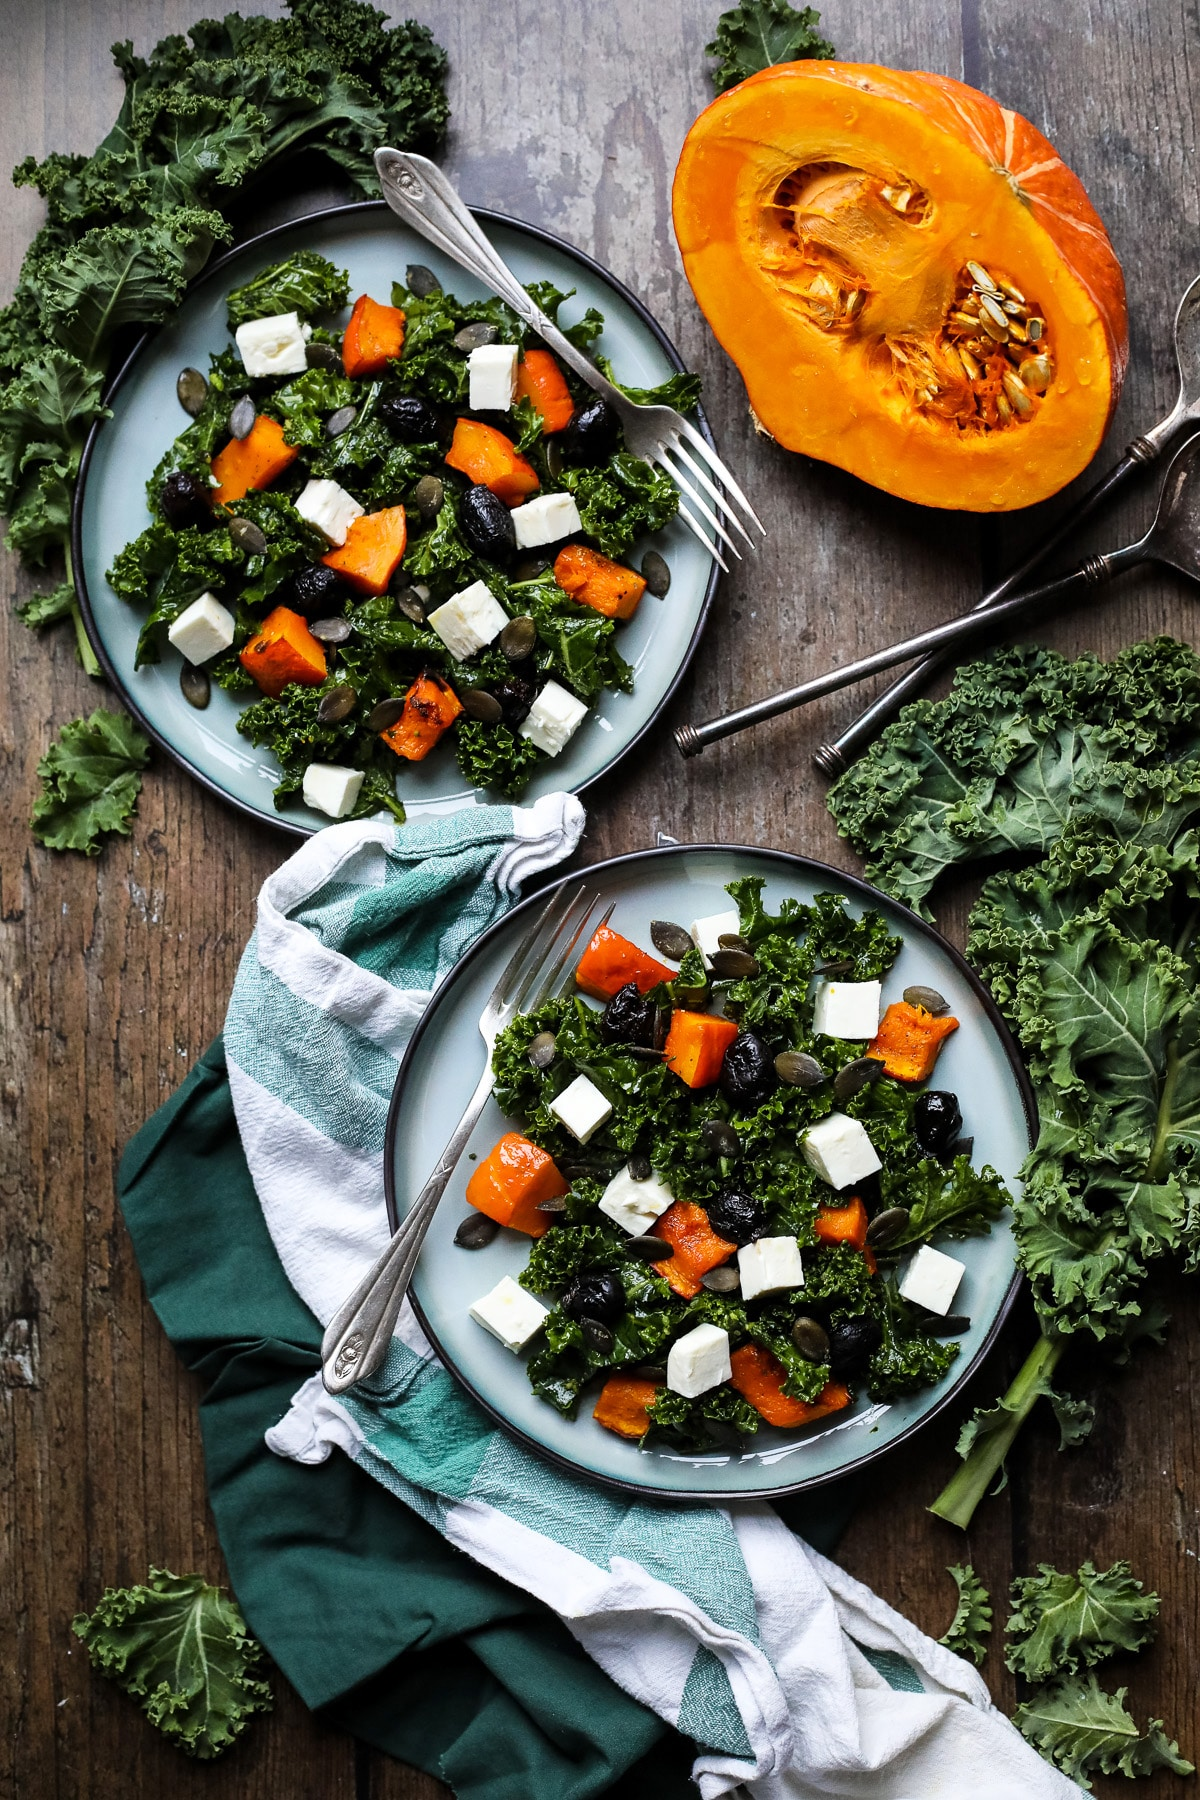 Plates with kale salad with pumpkin and feta.